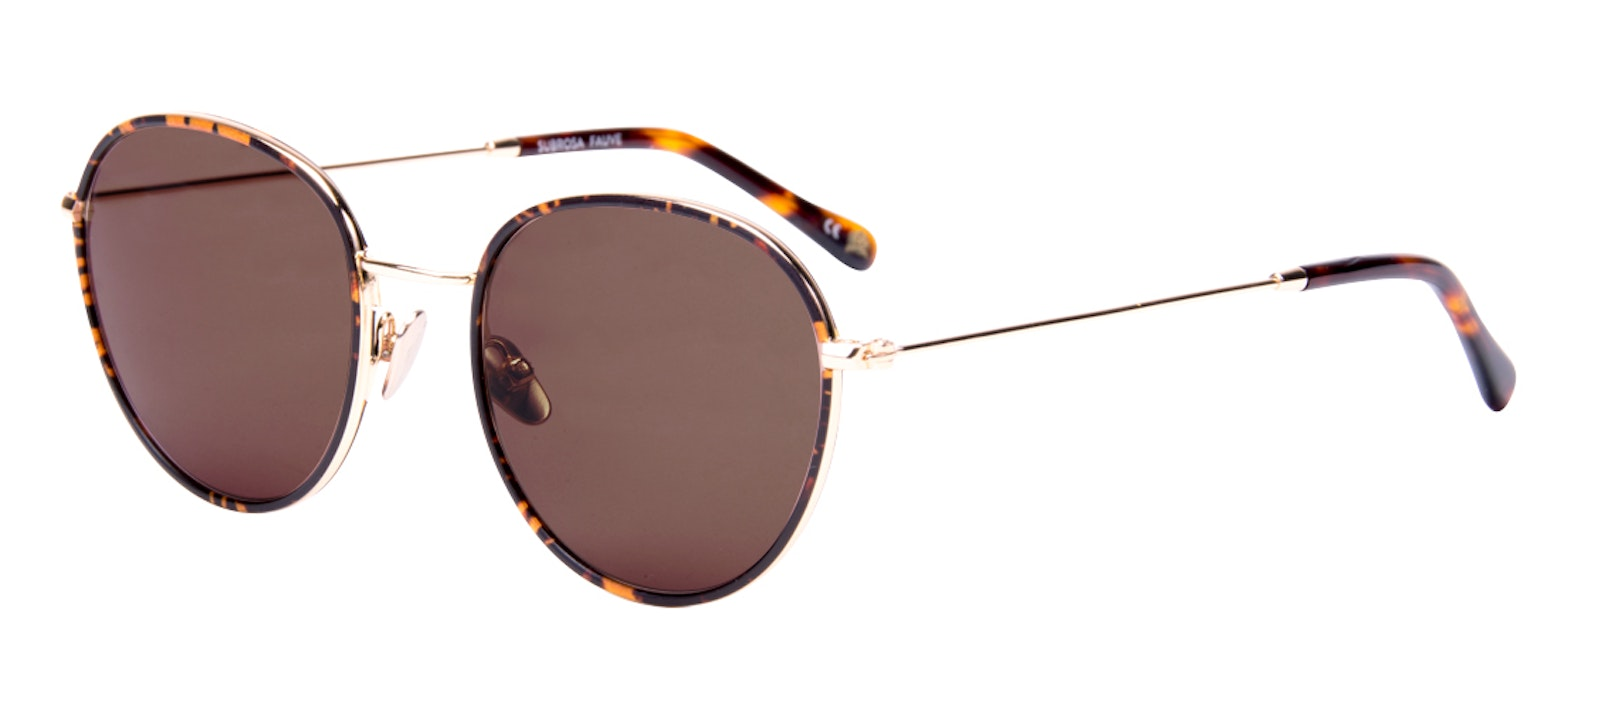 Affordable Fashion Glasses Round Sunglasses Women Subrosa Fauve Tilt